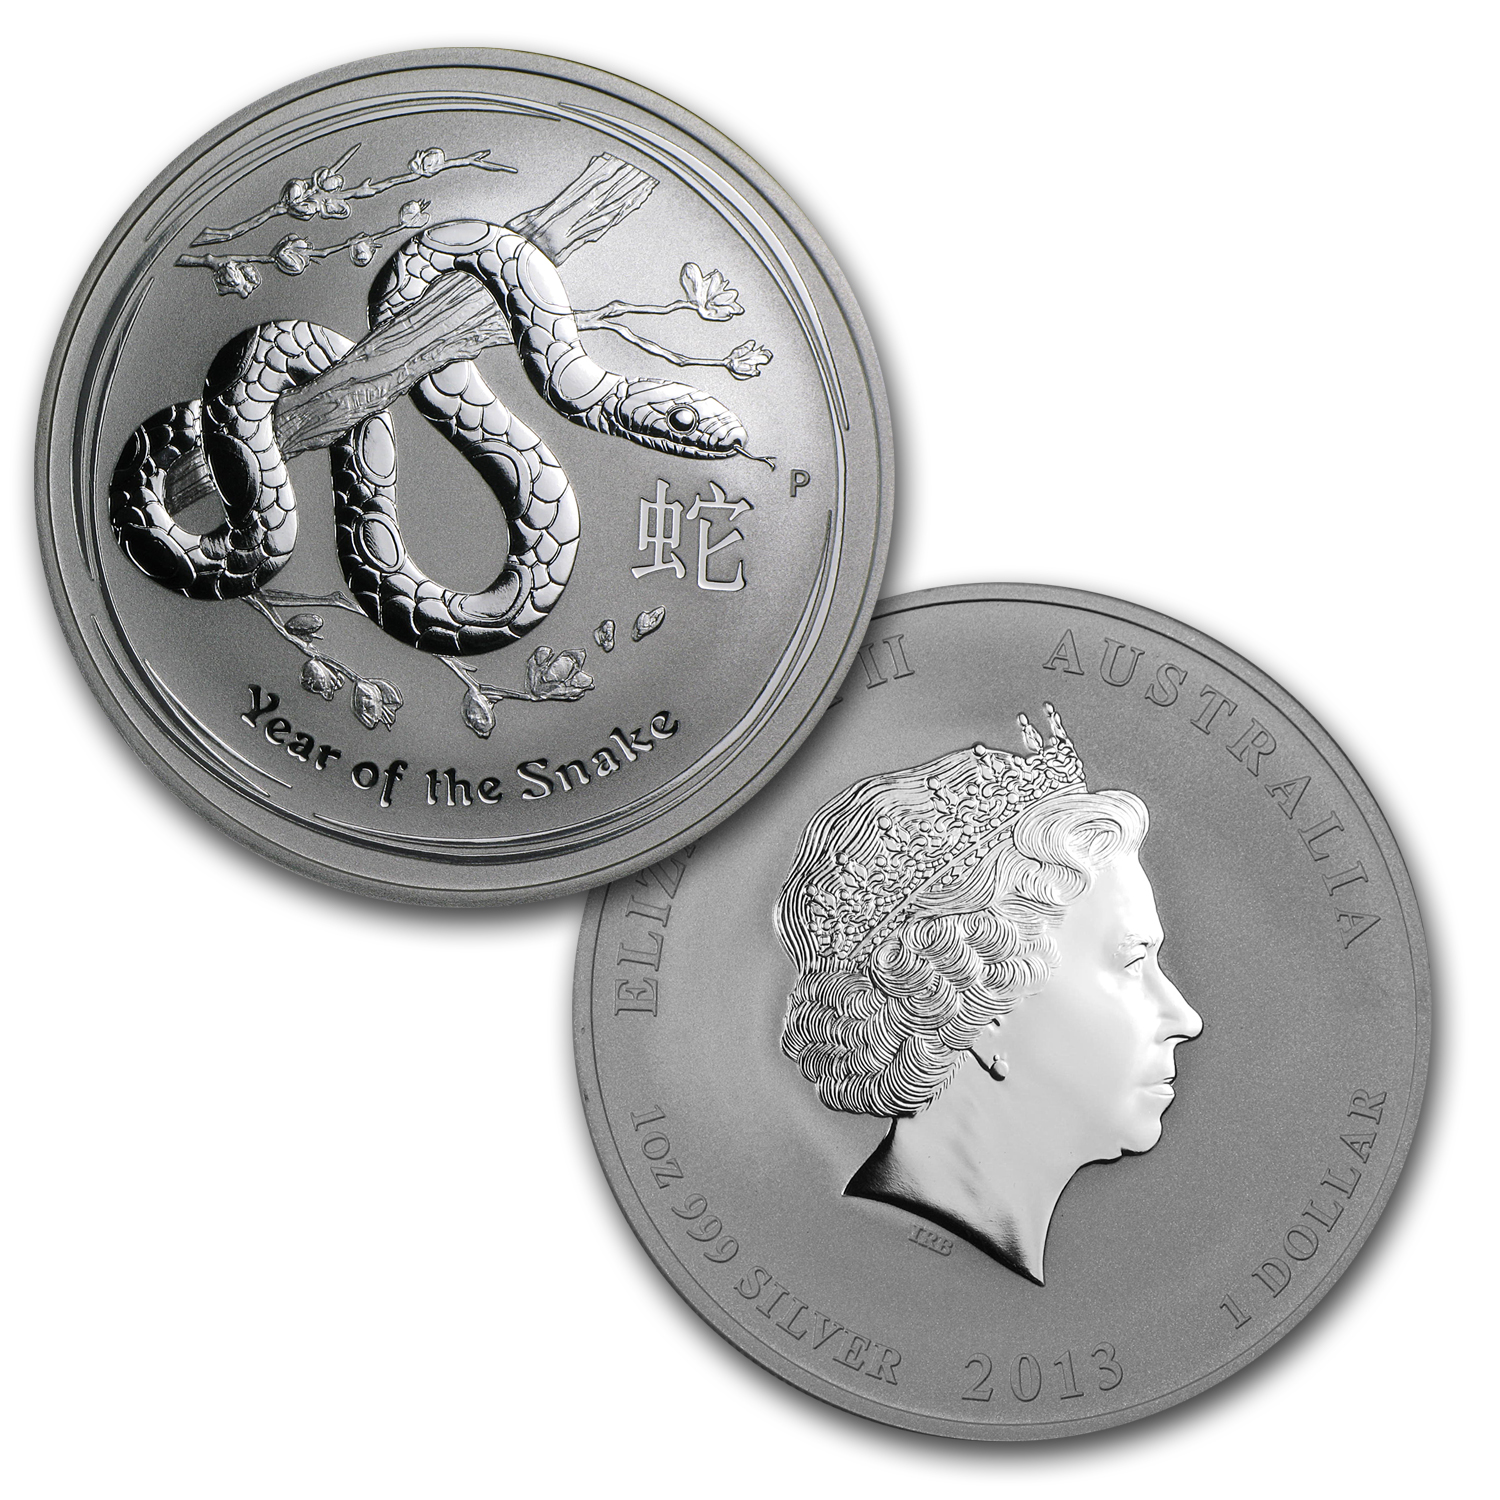 2013 Year of the Snake 1 oz Silver Typeset Collection (4 Coins)